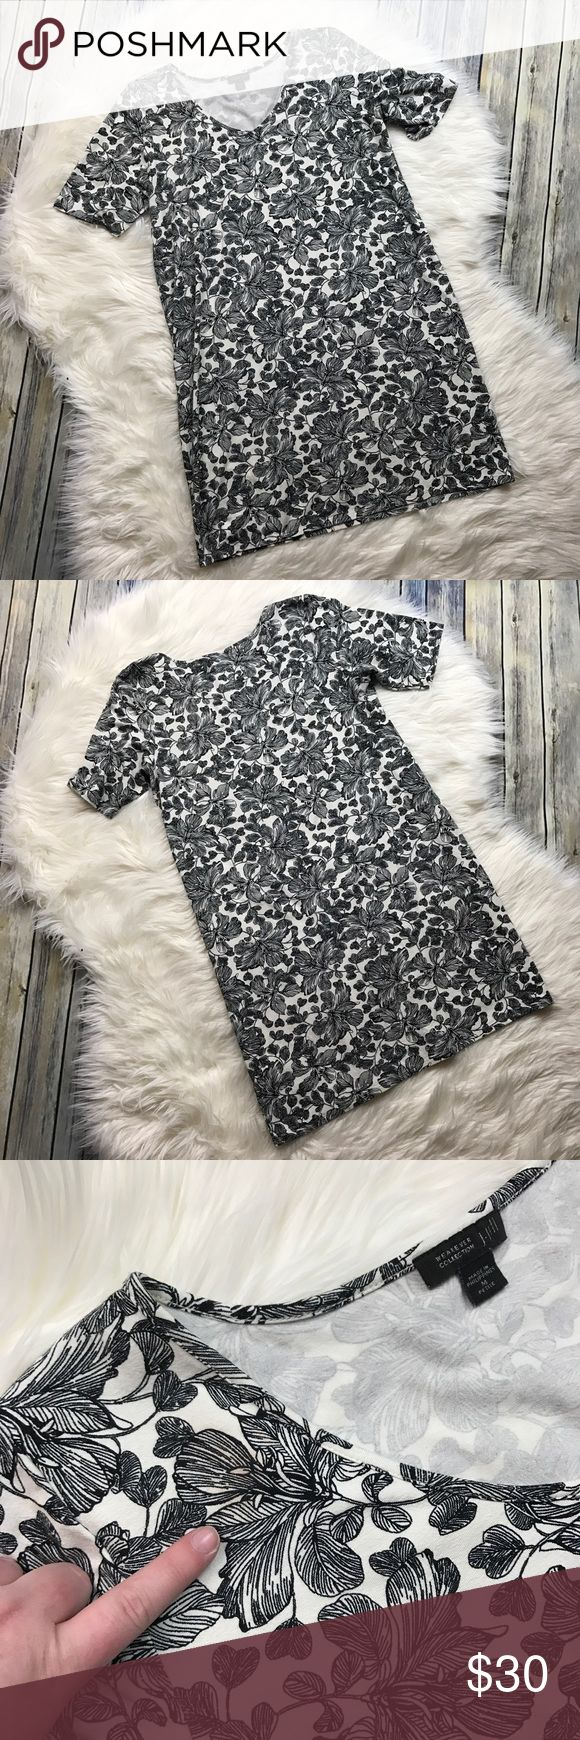 """J. Jill Wearever Collection Floral Knit Dress Adorable black and white floral leaf print jersey knit dress. So soft and comfy. Short sleeve. SMALL FLAW: Please see photos. There is a small stain near the top collar. It is otherwise perfect. The stain is not very noticeable due to the pattern. Petite size medium. 95% rayon, 5% lycra spandex.   Measurements laying flat (without stretching)— Armpit to armpit: 20"""" Length, shoulder to hem: 33"""" J. Jill Dresses"""